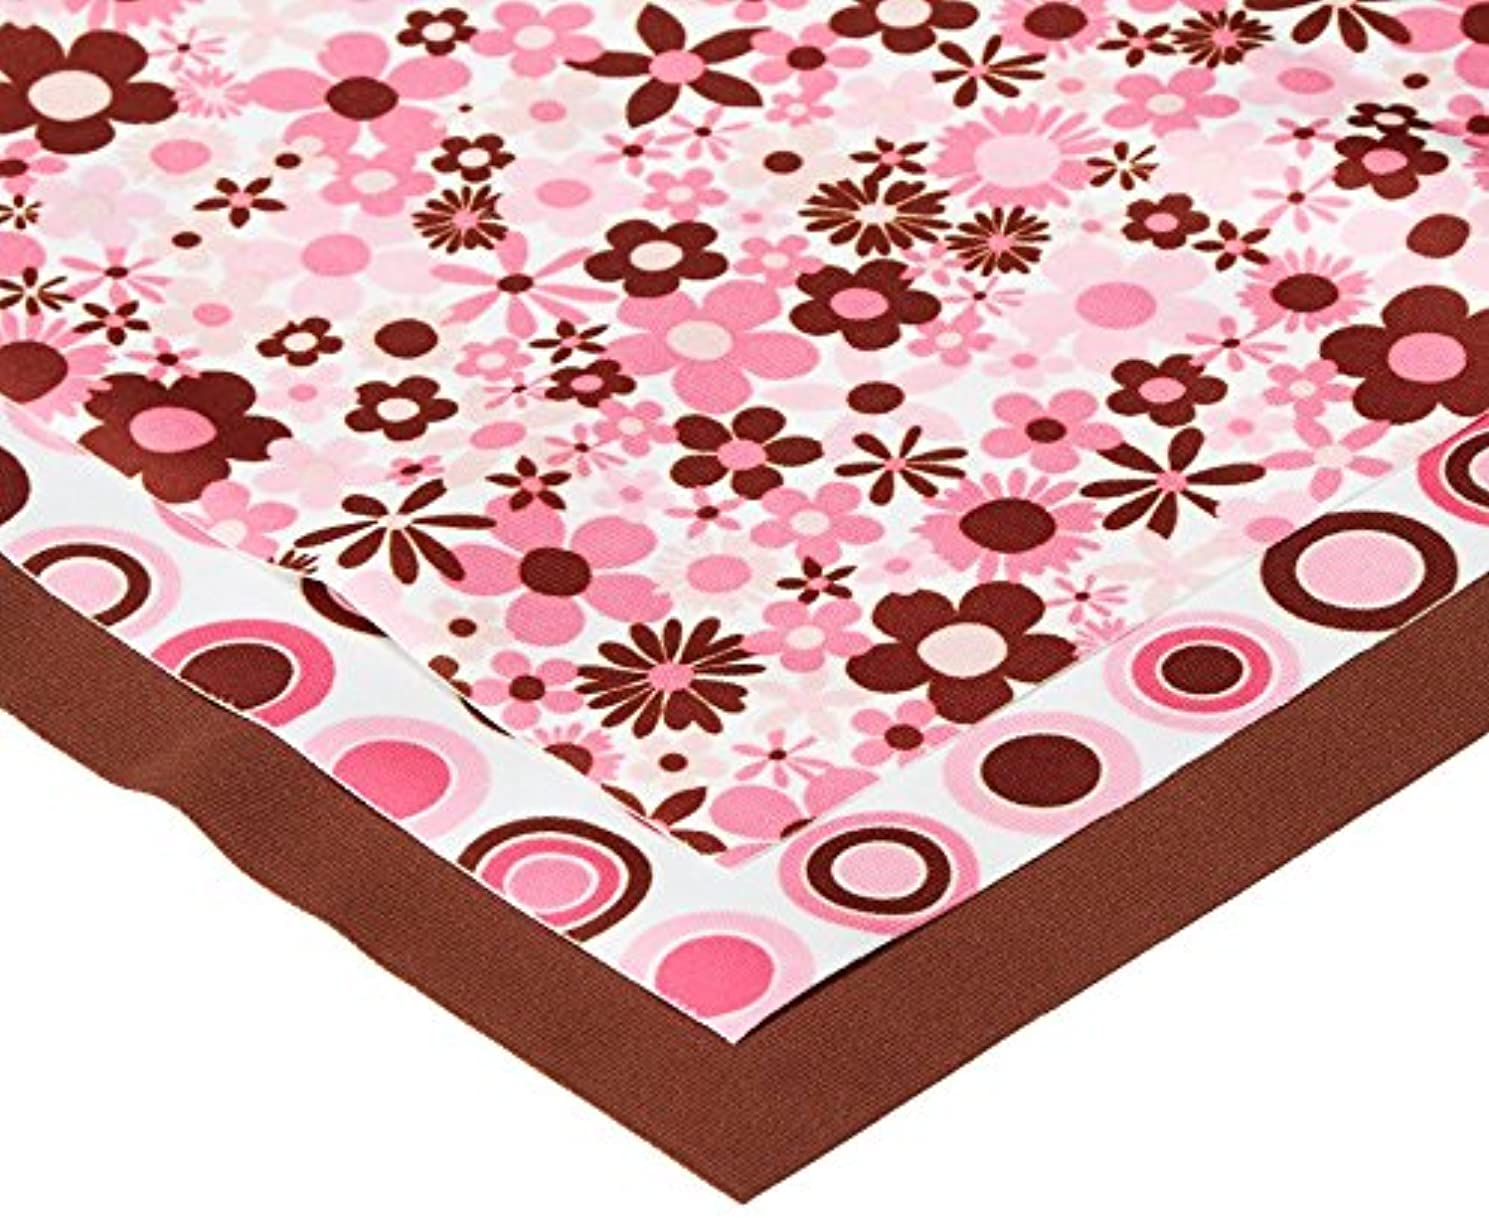 Babyville Boutique 35023 PUL Fabric, Mod Girl Flowers & Dots, 21 x 24-Inch (3-Count)